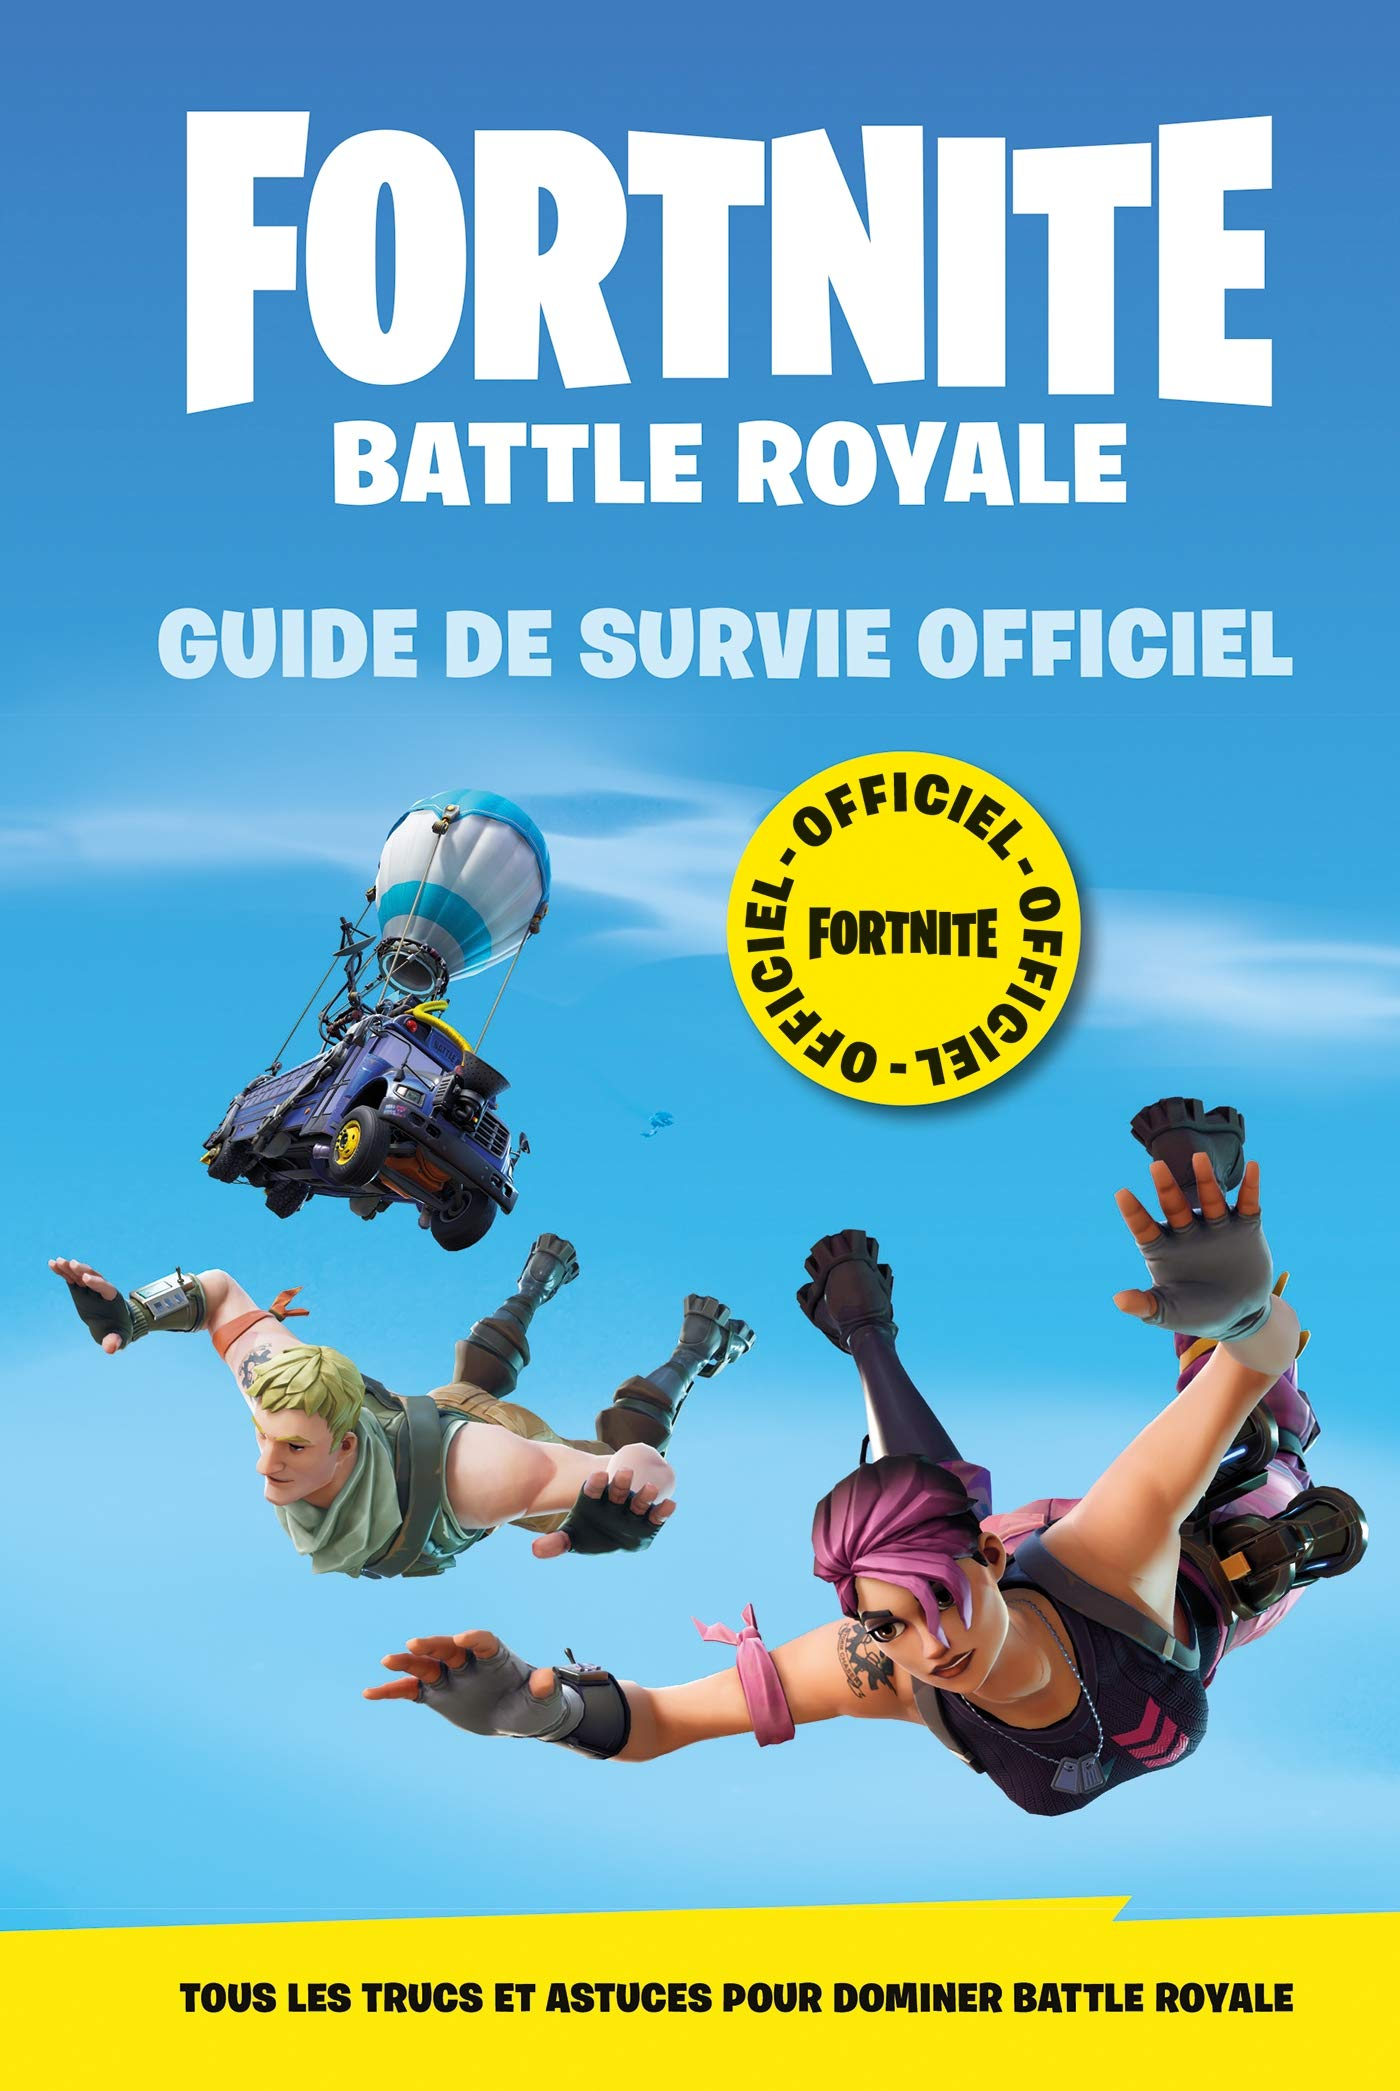 Fortnite Battle Royale Guide De Survie Officiel